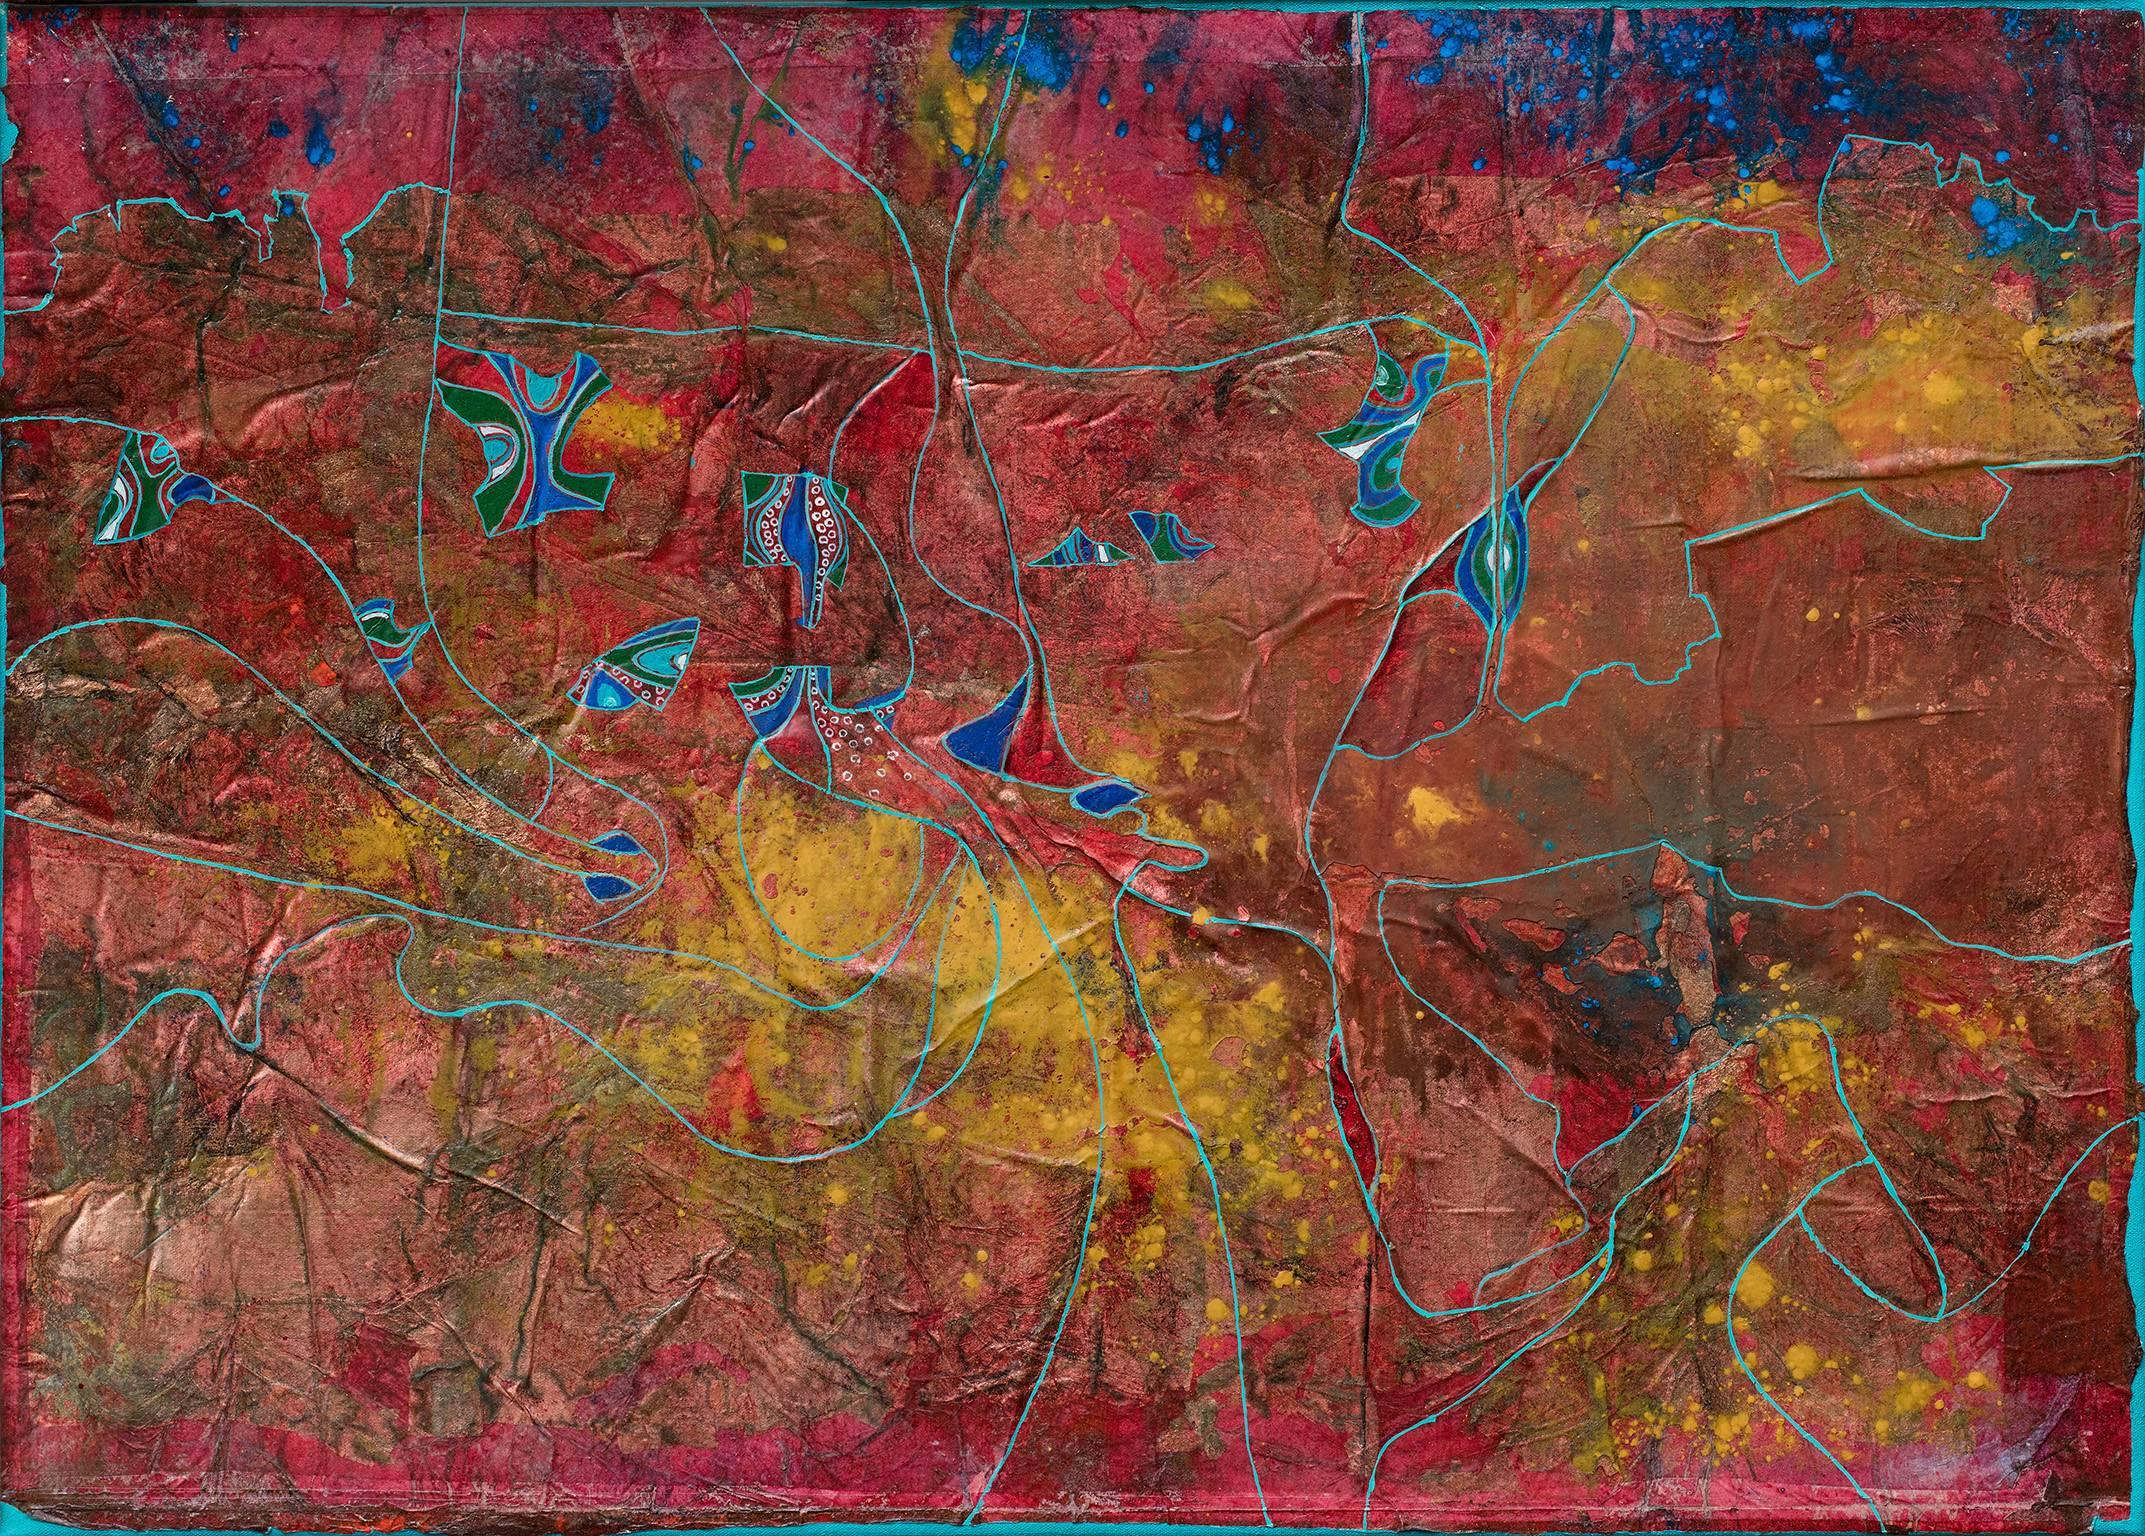 Life growing in a Metal World - Abstract Blue and Red Oil Painting